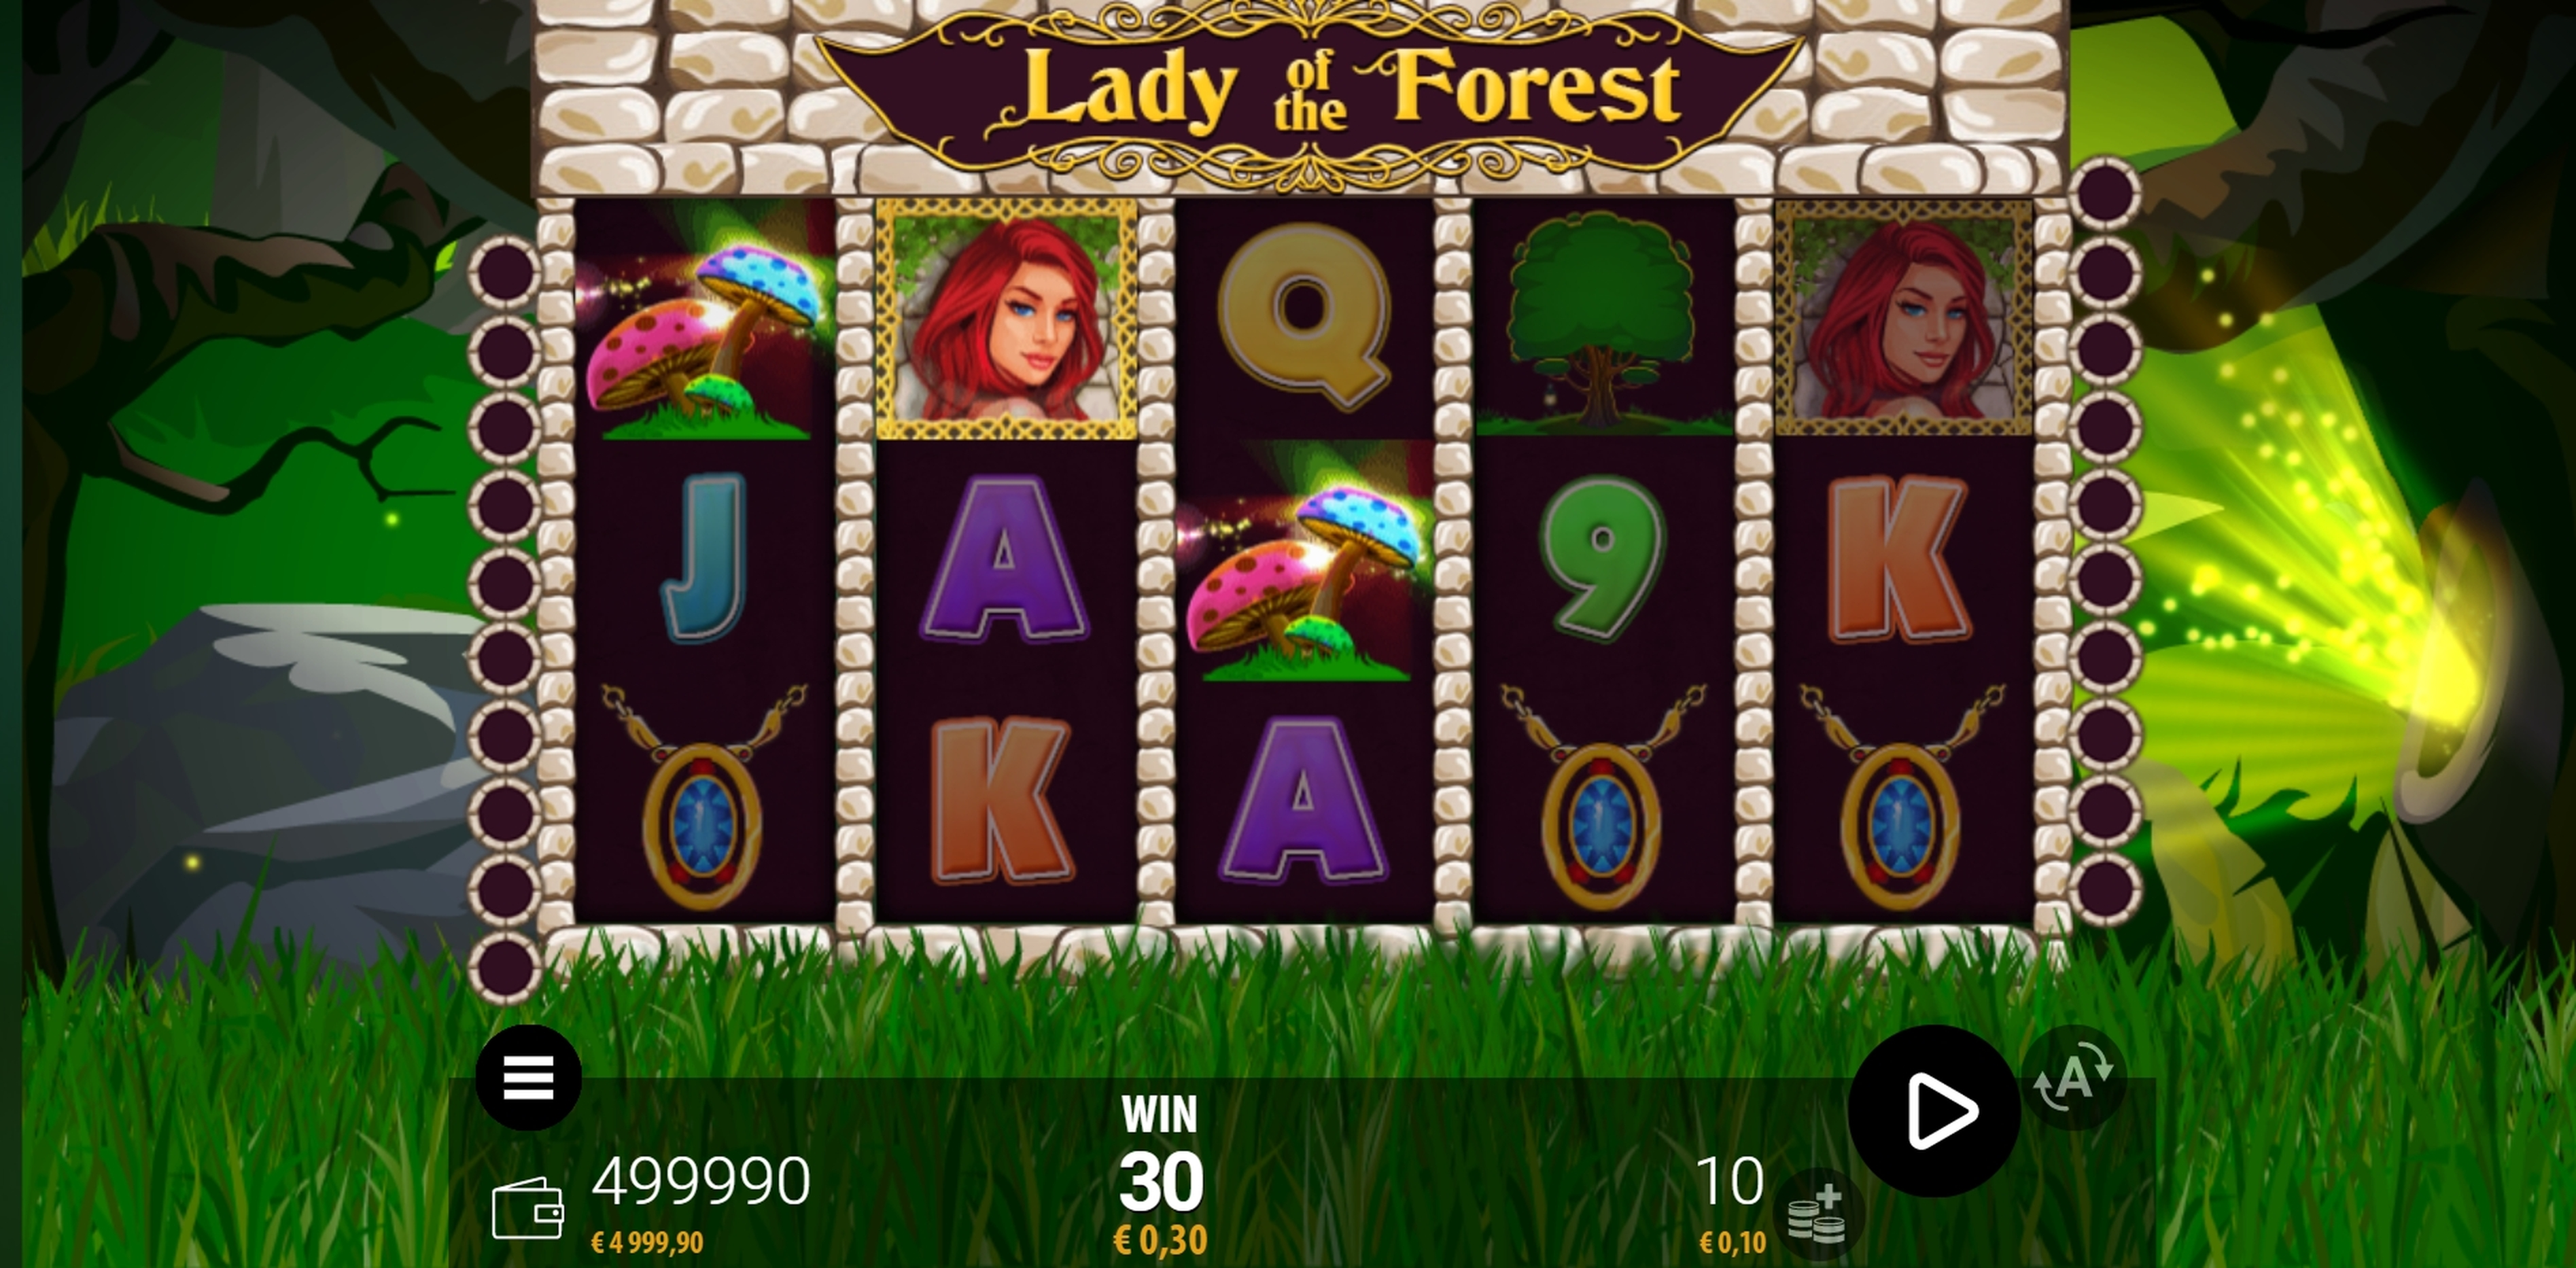 Win Money in Lady of the Forest Free Slot Game by ZEUS PLAY